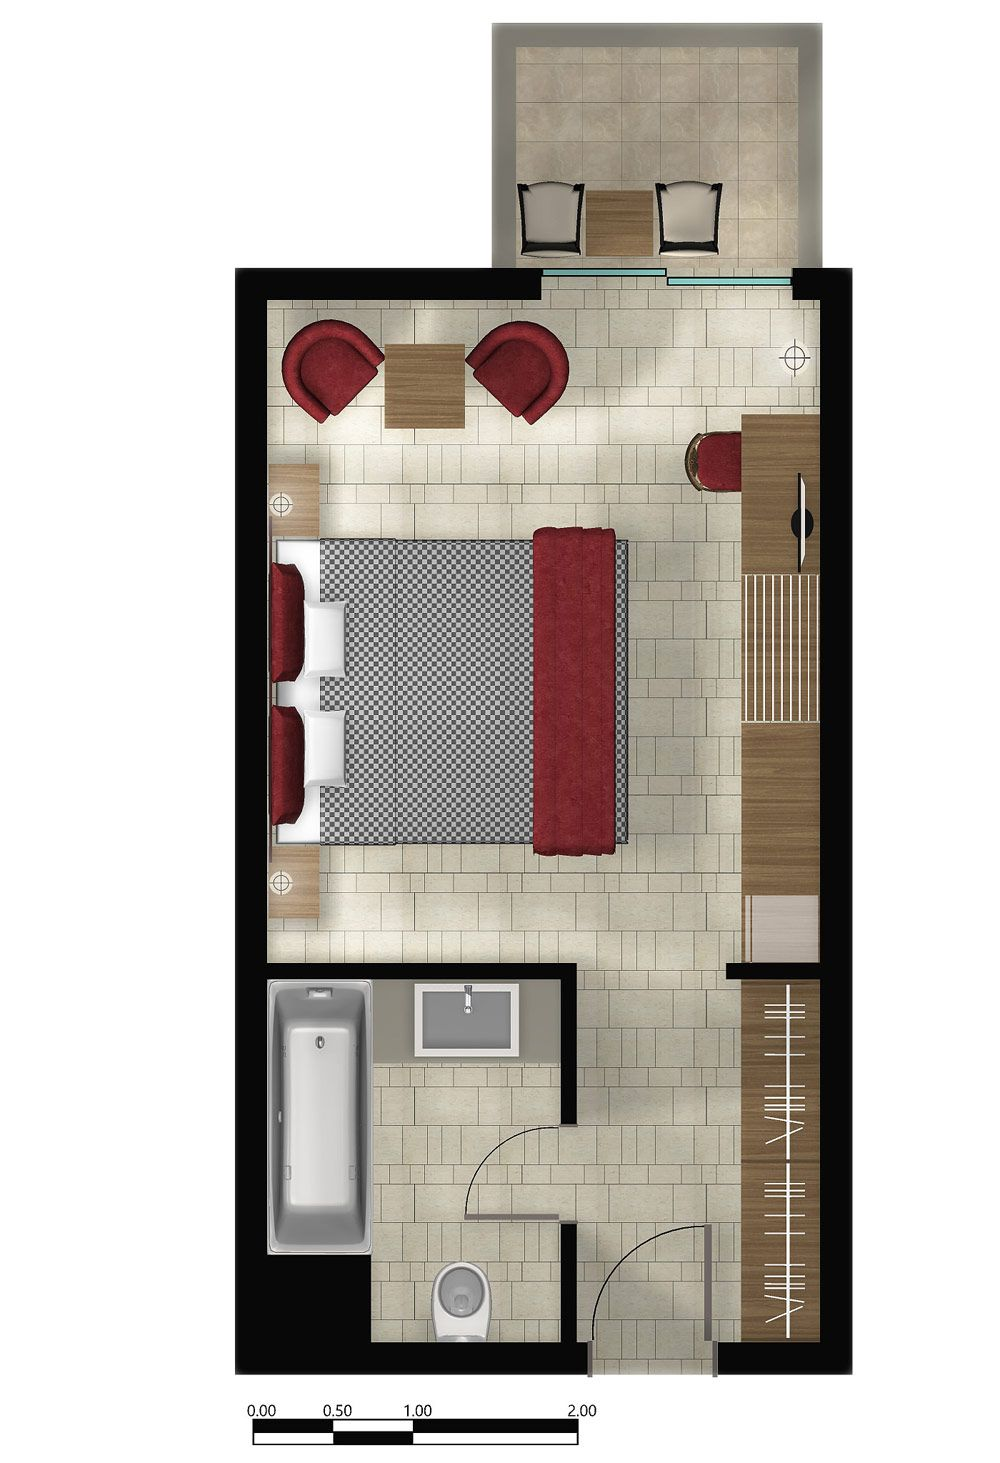 Hotel Room Plan: Typical W Hotel Guestroom Plans - Google Search